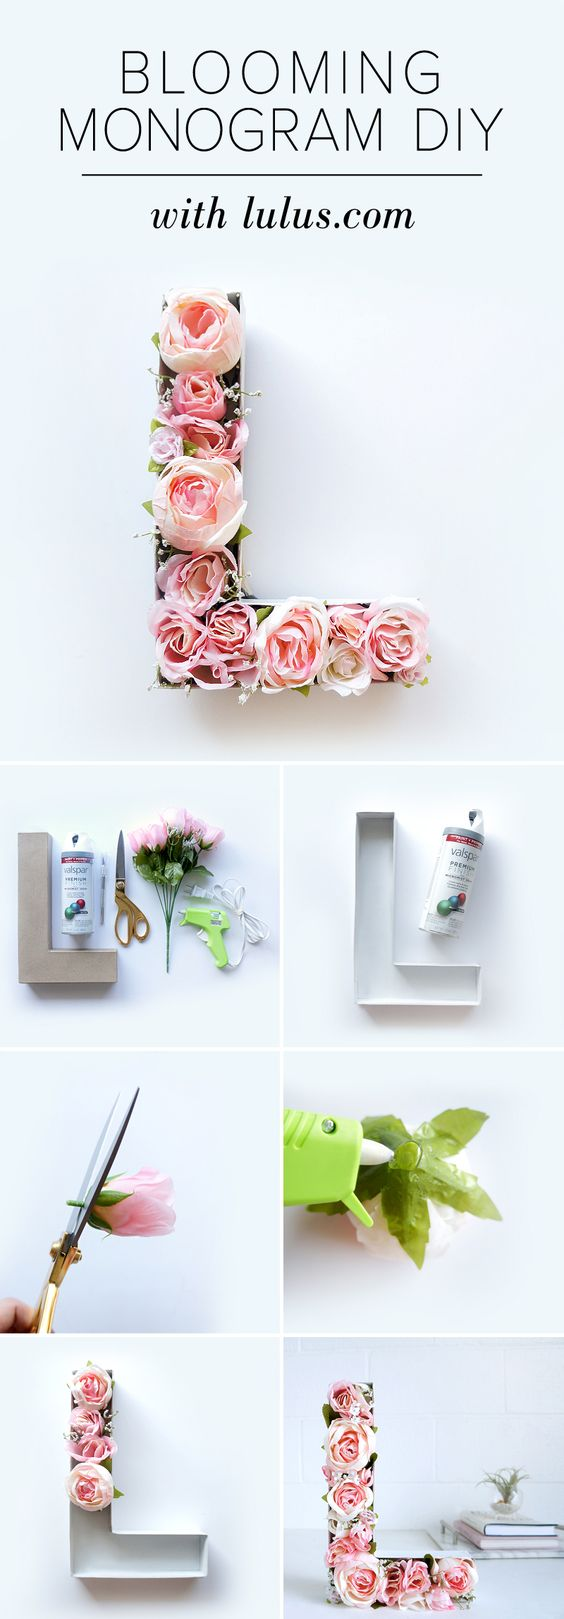 Blooming Monogram DIY.